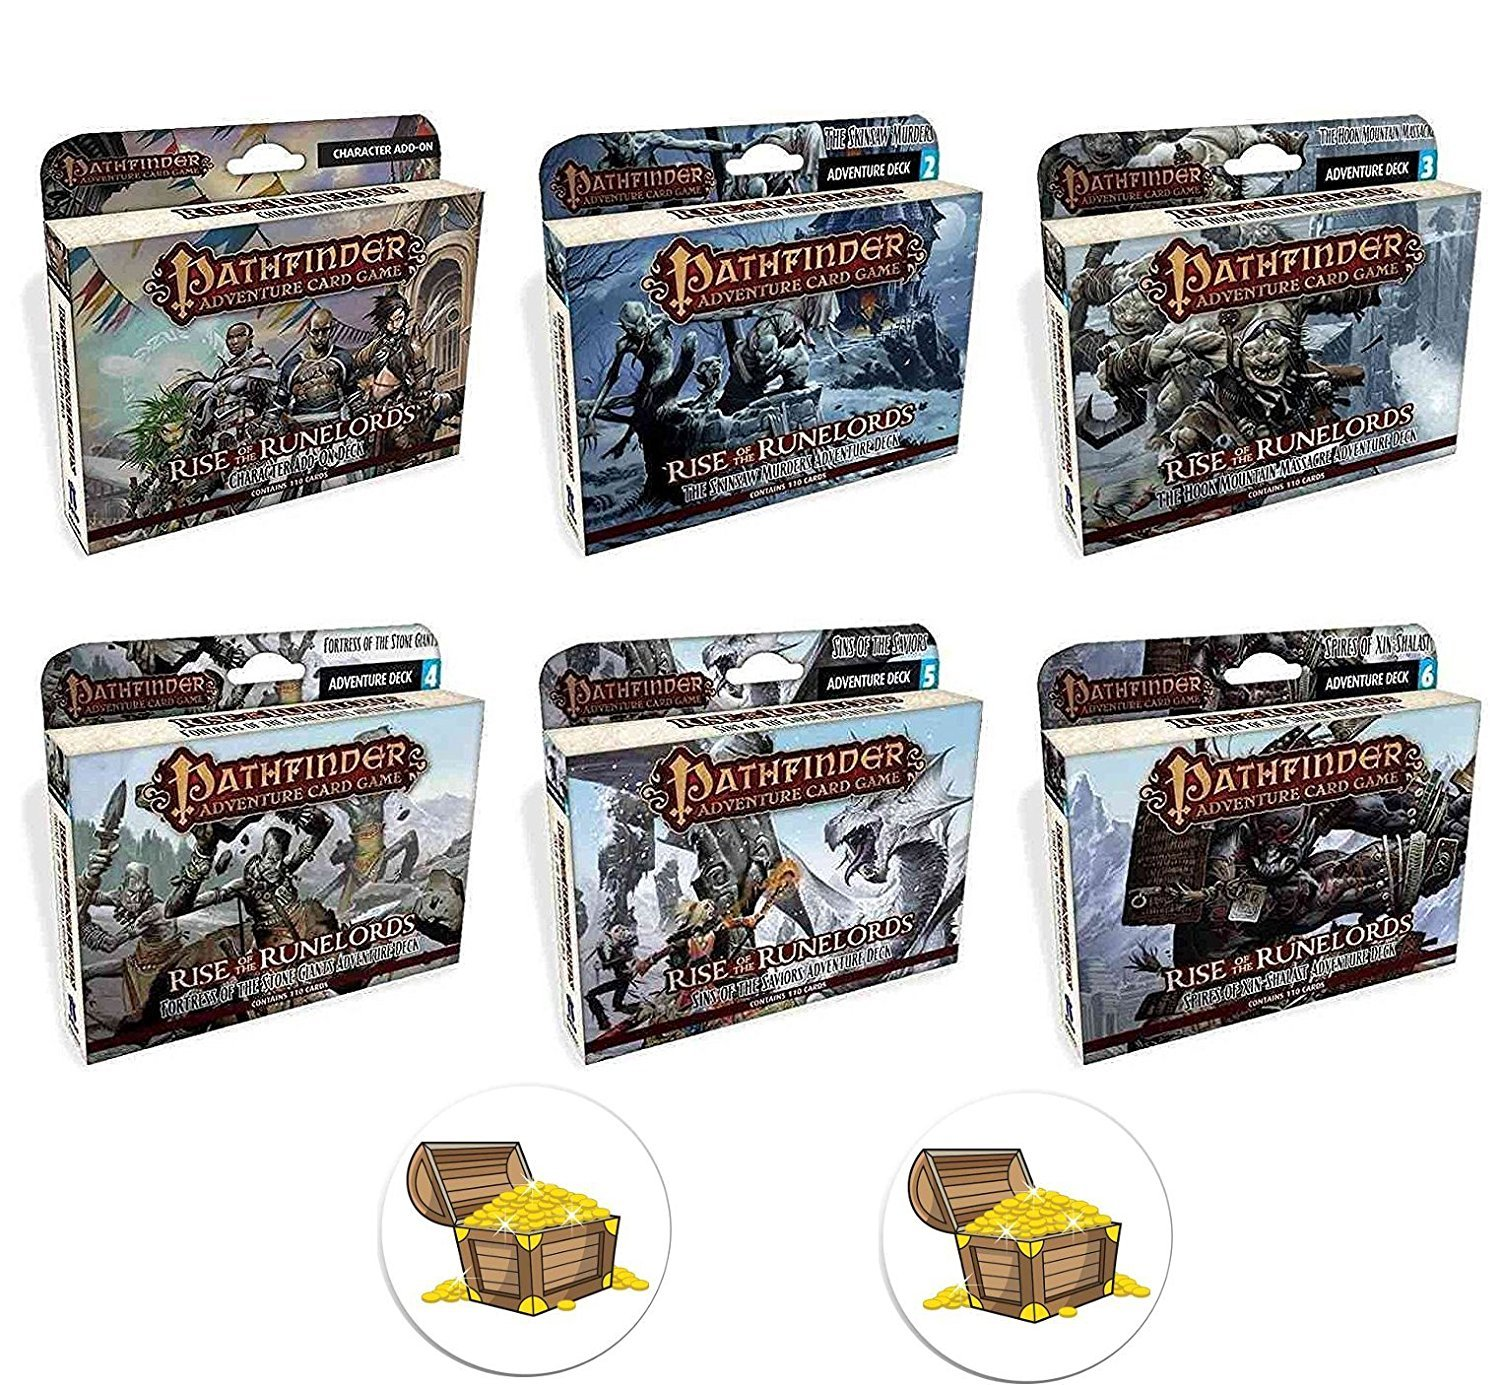 BUNDLE of All 6 Pathfinder Adventure Card Game Rise of the Runelords Expansion Decks Plus 2 Treasure Chest Buttons